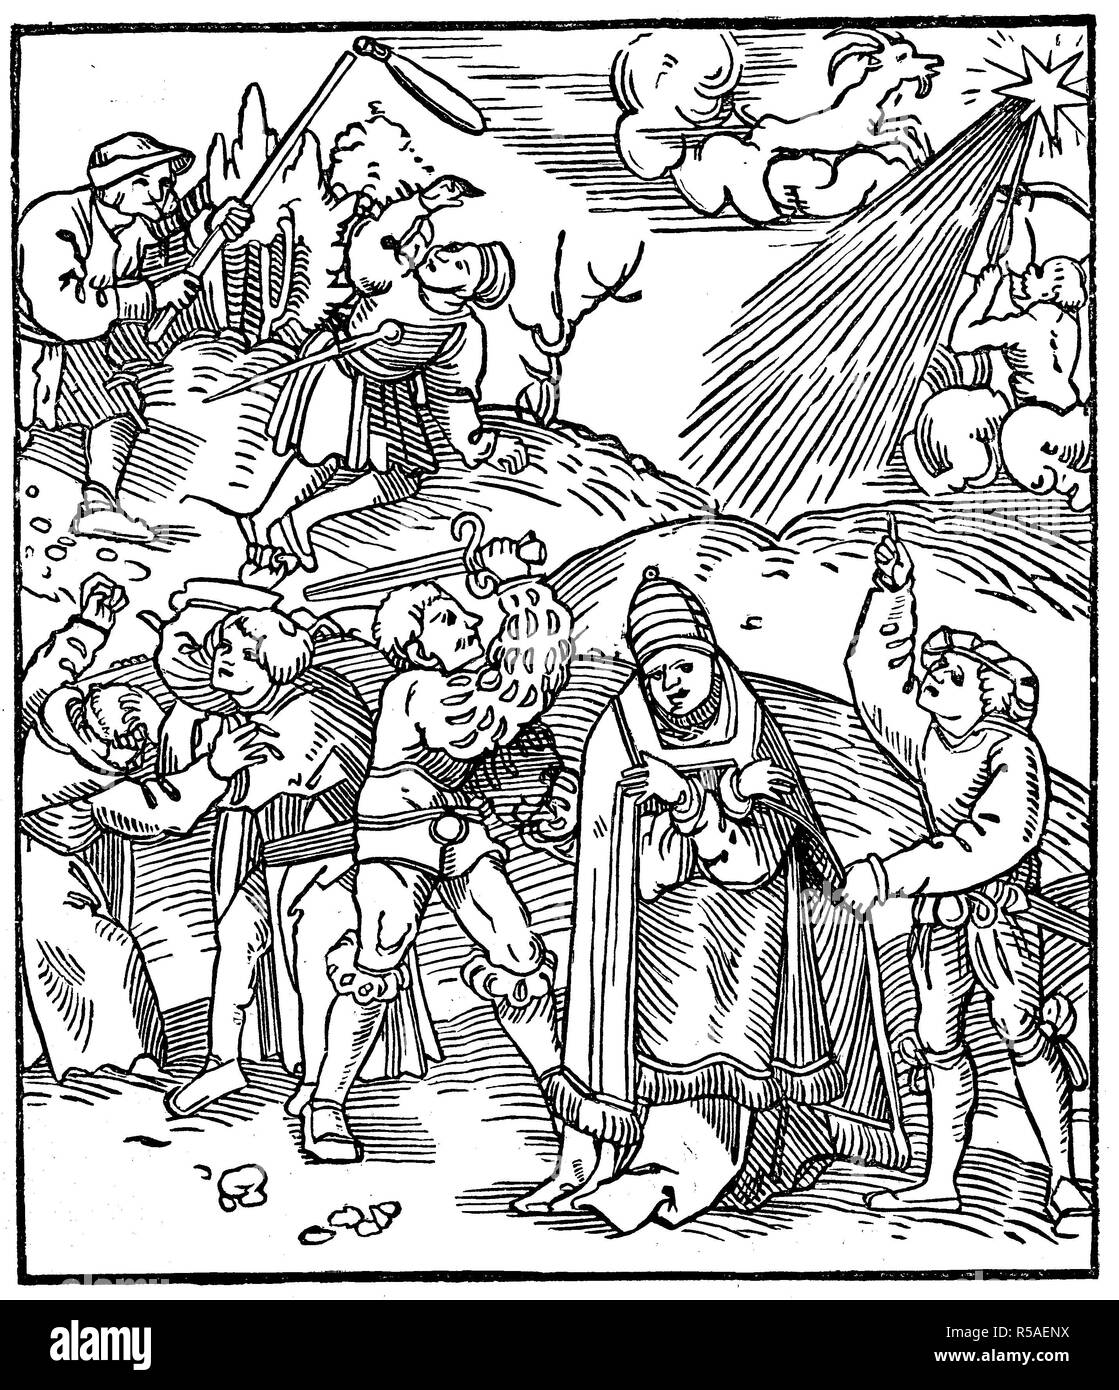 Fight against the papacy, woodcut from 1522, France - Stock Image